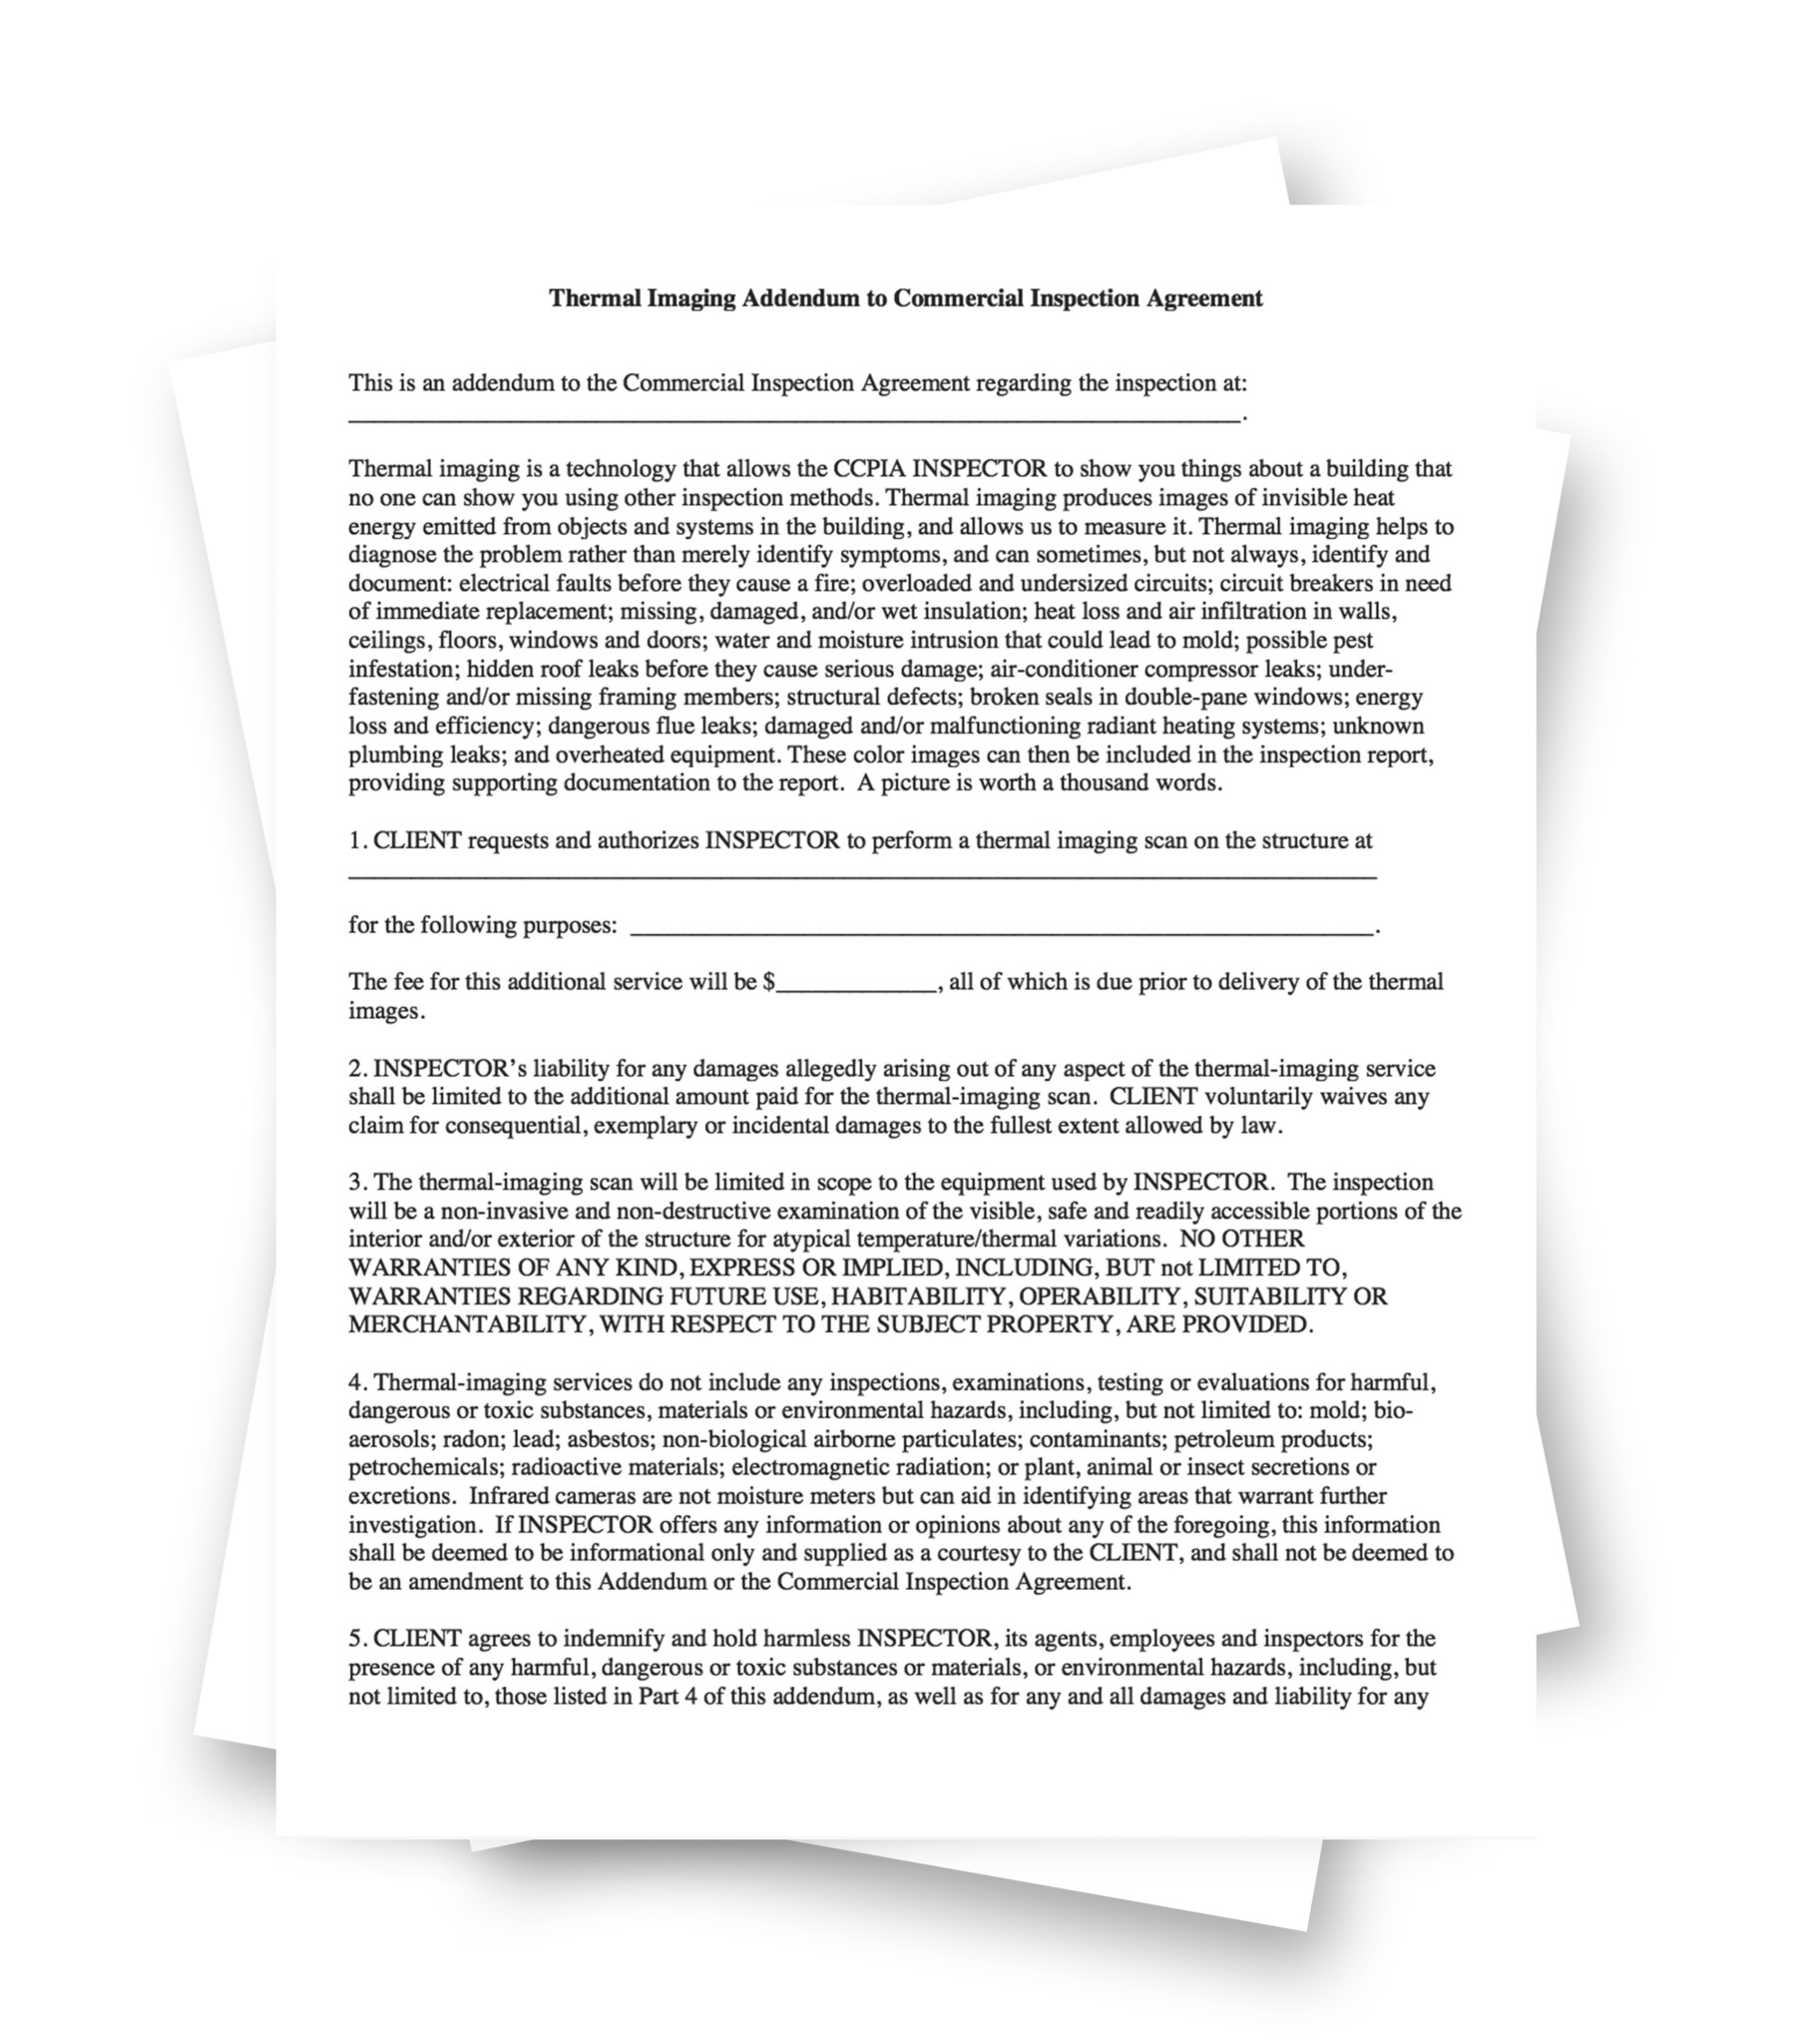 Thermal Imaging Addendum To Commercial Inspection Agreement